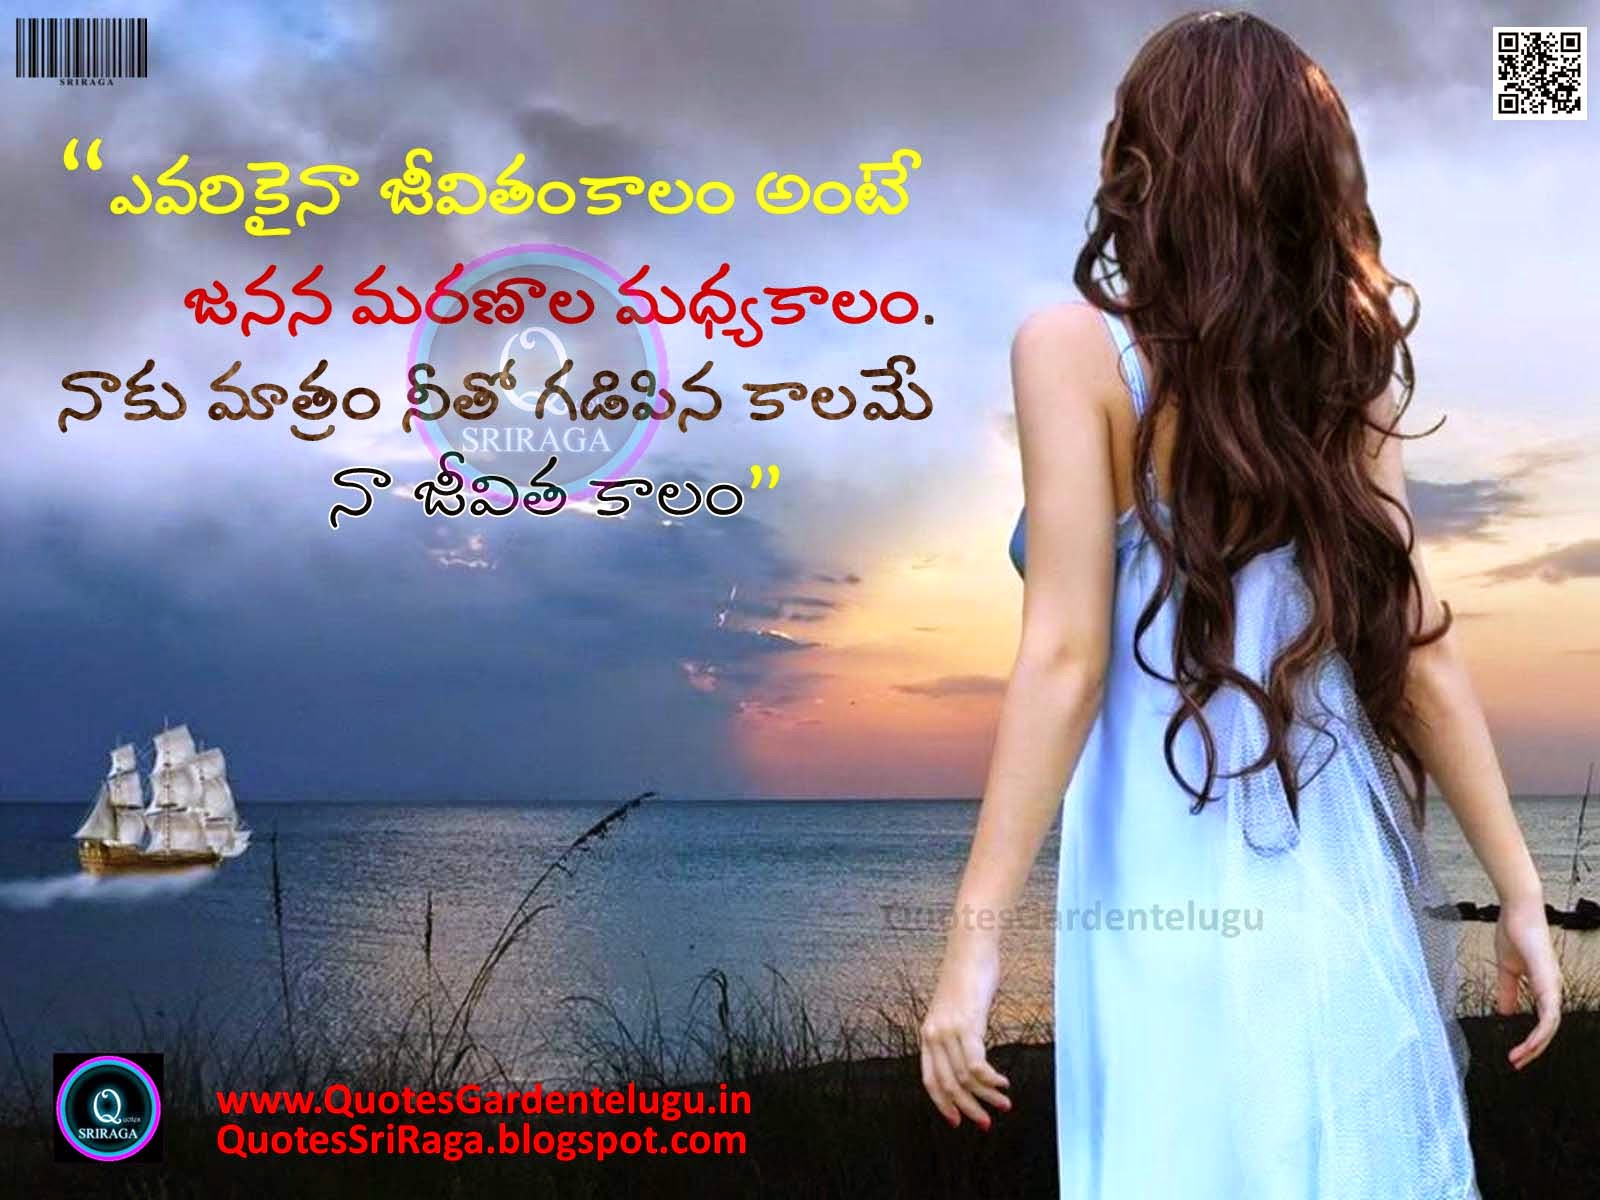 Telugu Love Quote Photos Heart Touching Love Quotes in